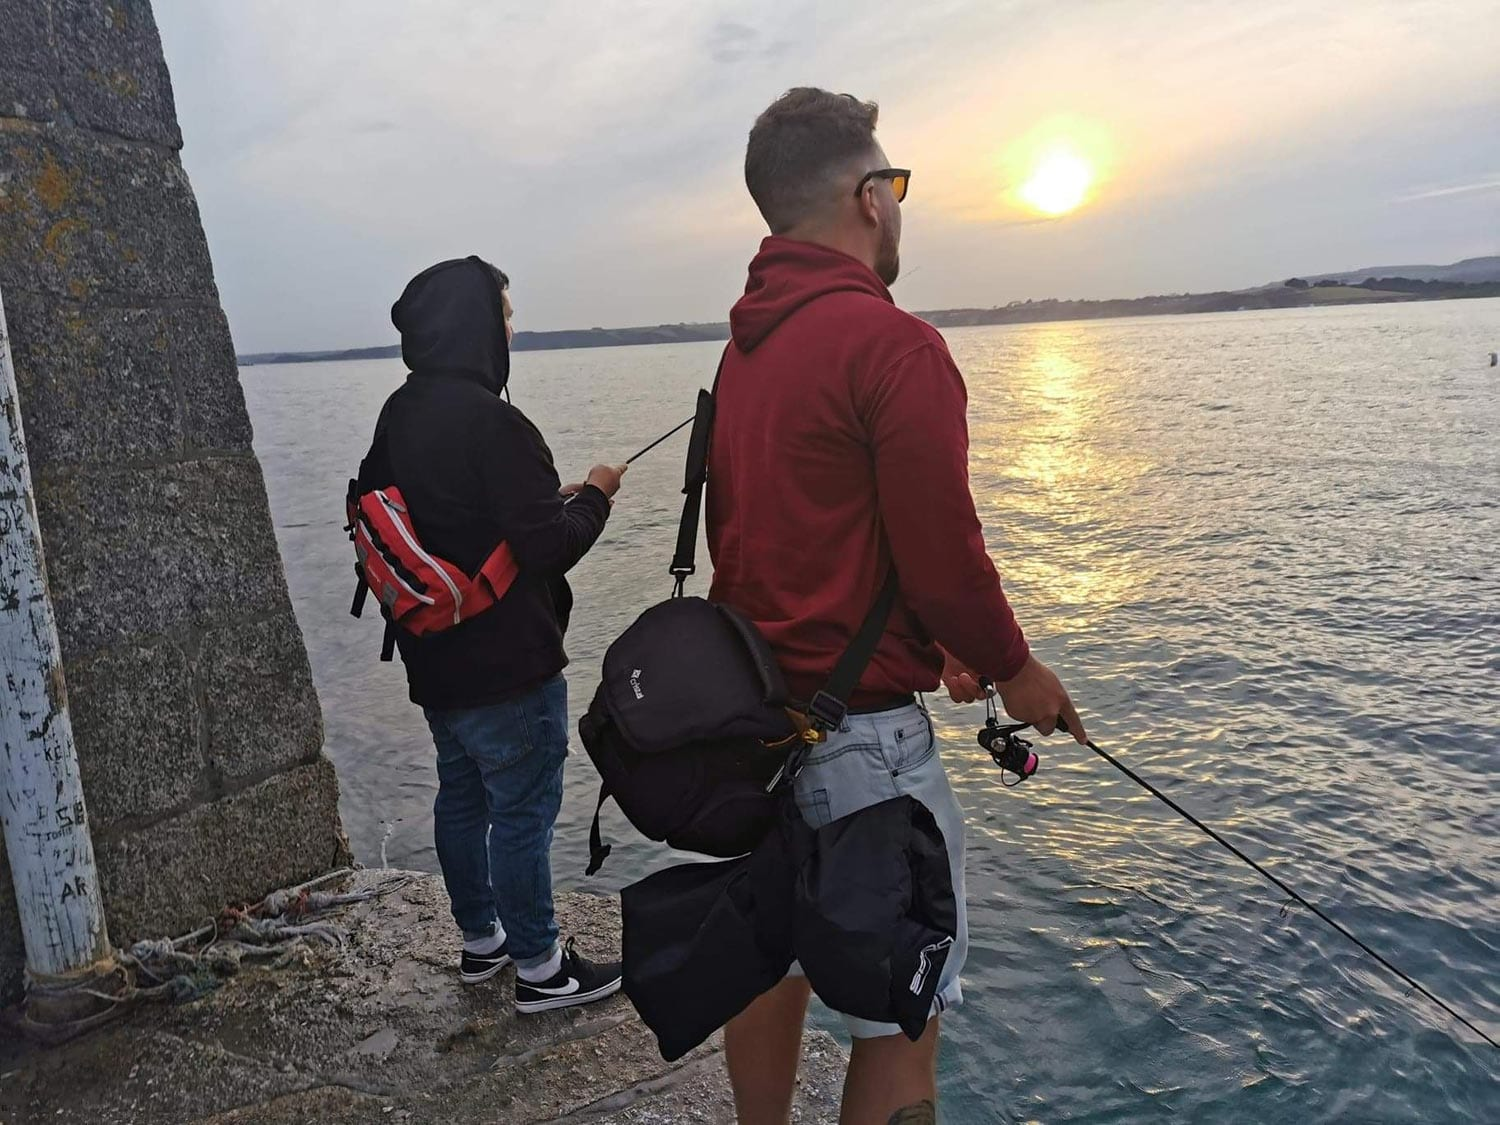 LRF fishing from the end of a solid jetty